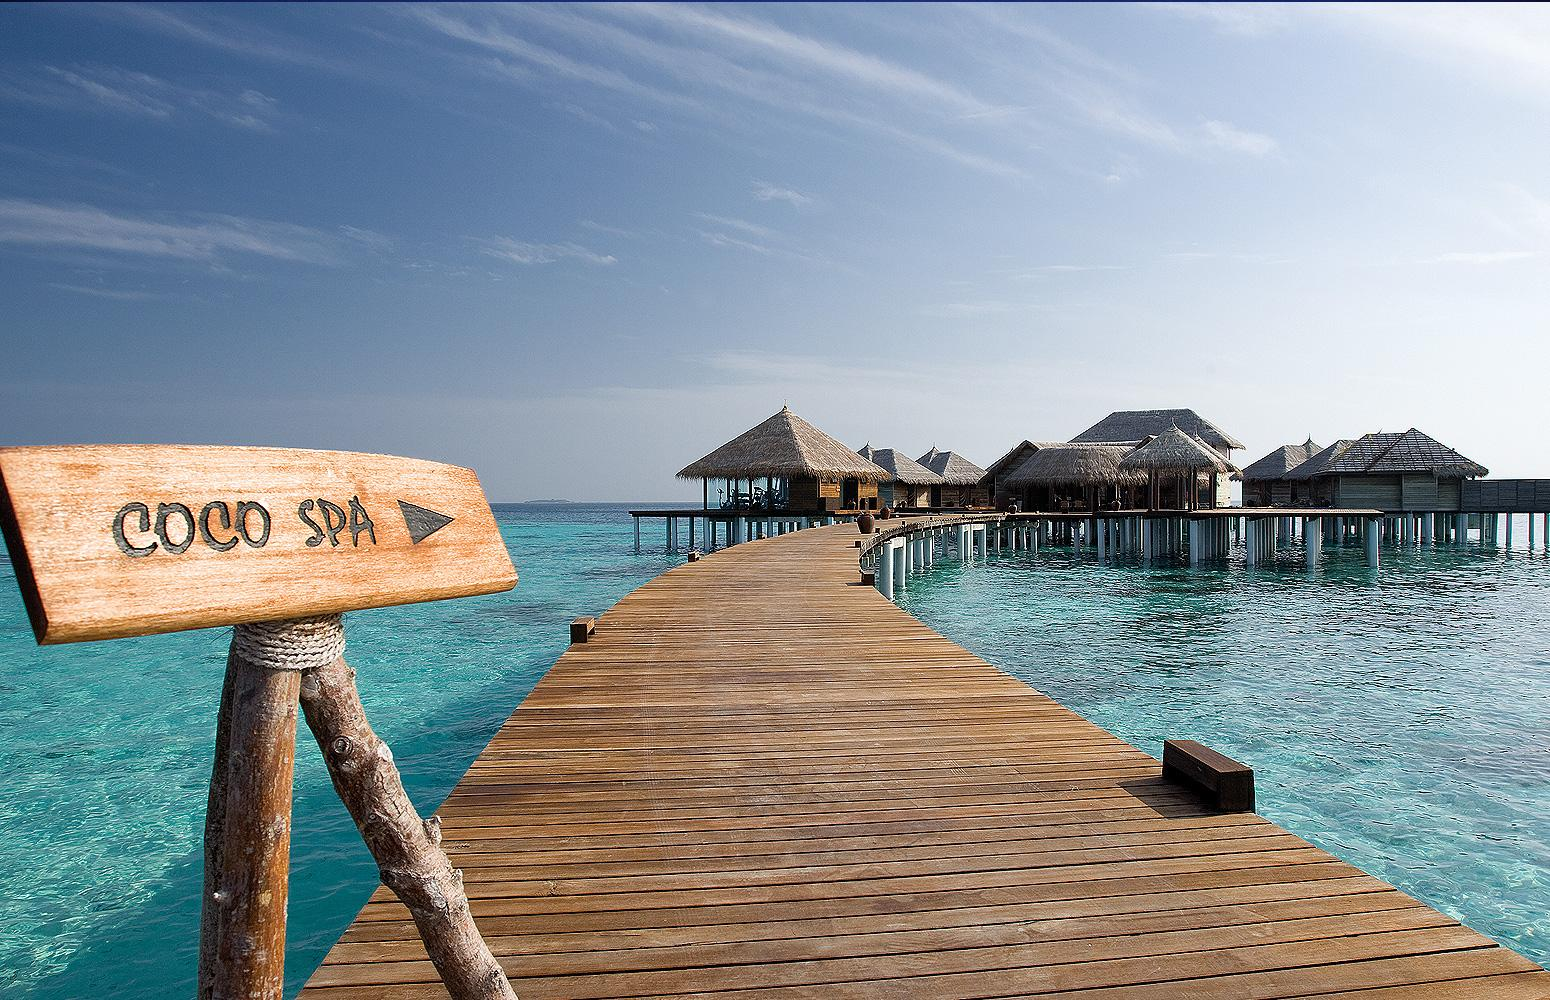 Coco Palm Bodu Hithi